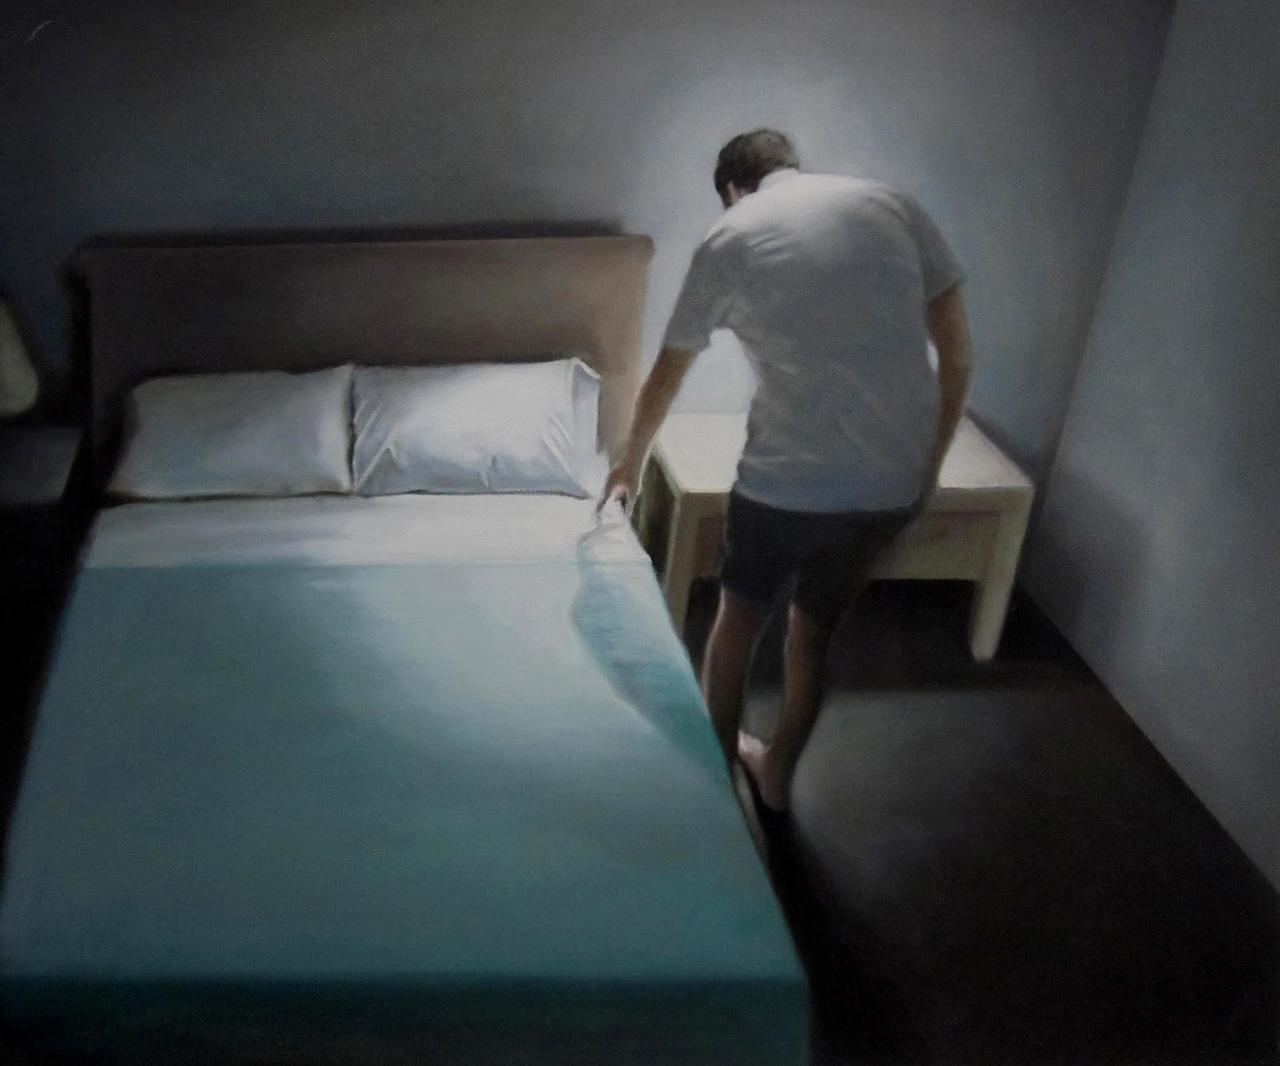 The Removal 16, oil on canvas, 50 x 60cm, 2010